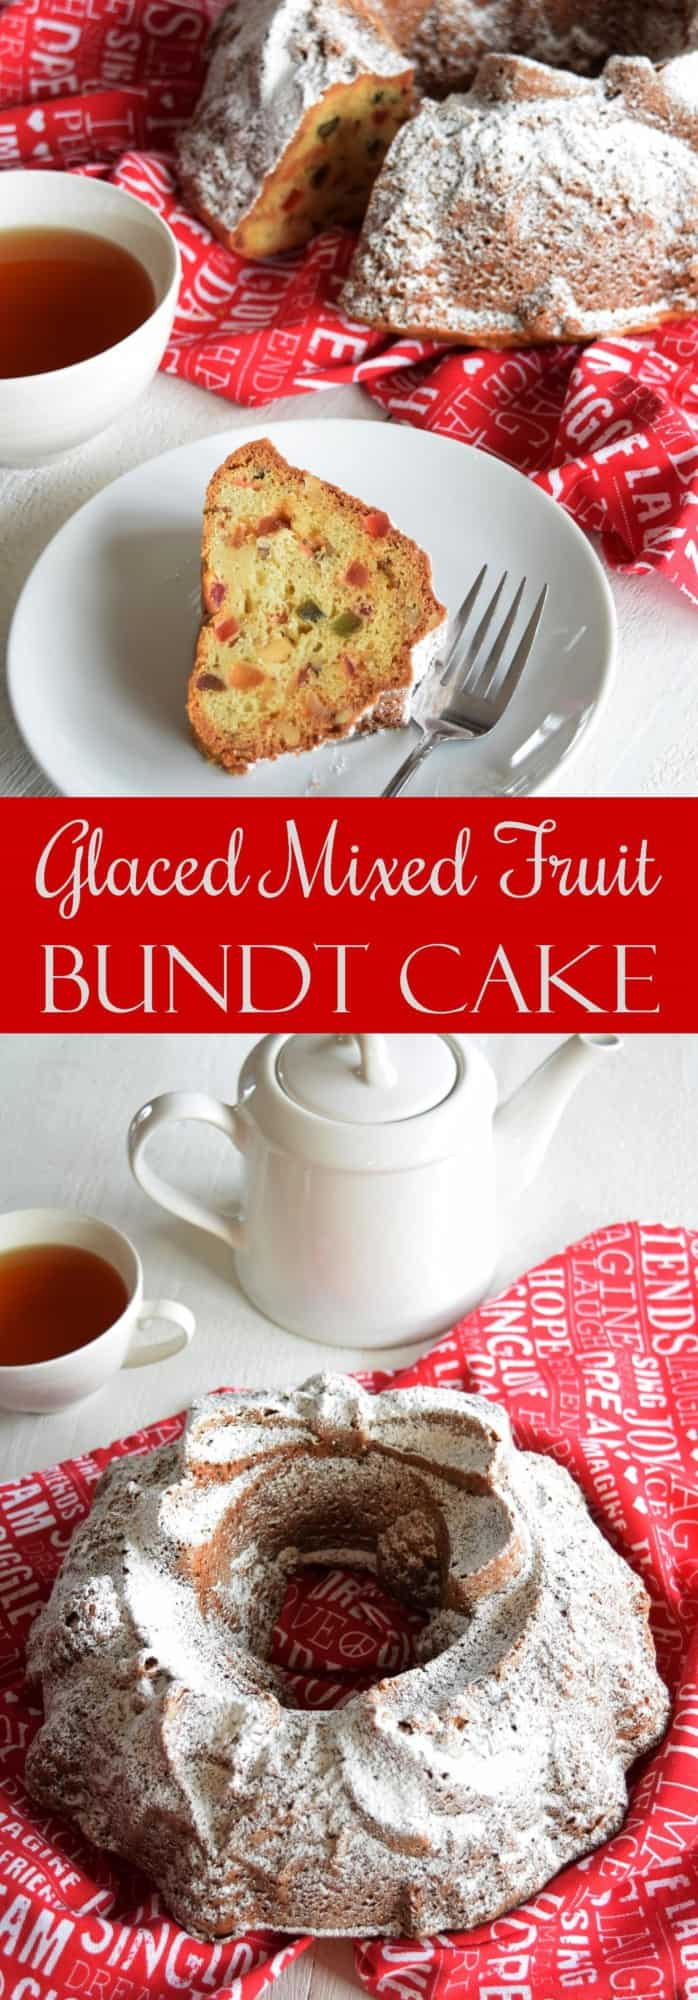 Glace Mixed Fruit Bundt Cake